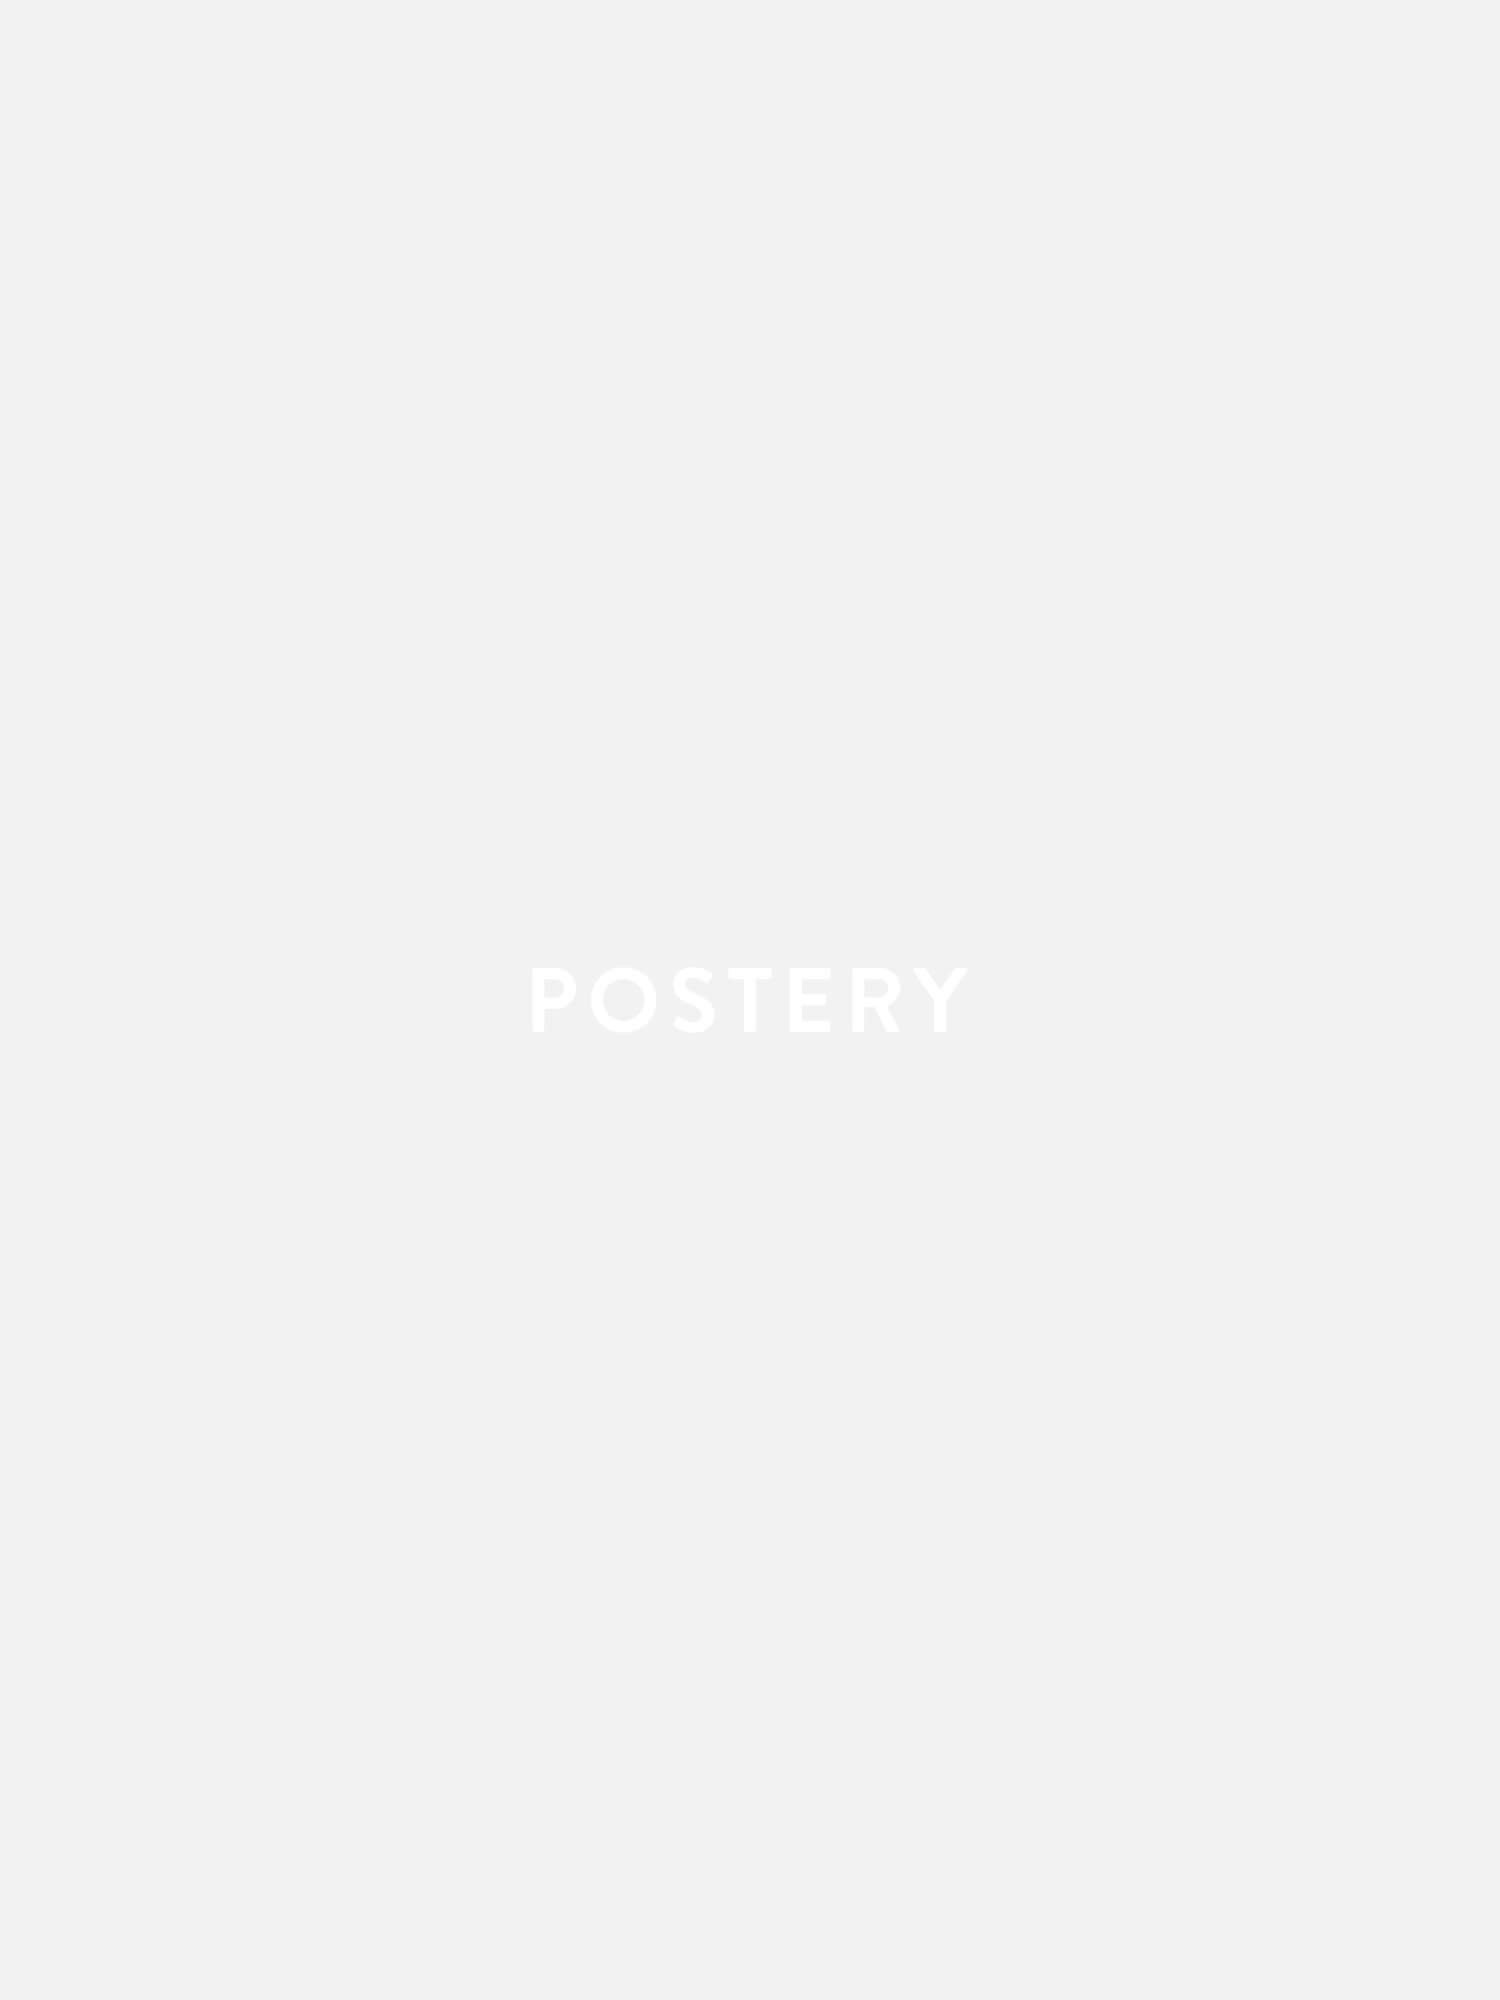 Naked Sketch no.2 Poster